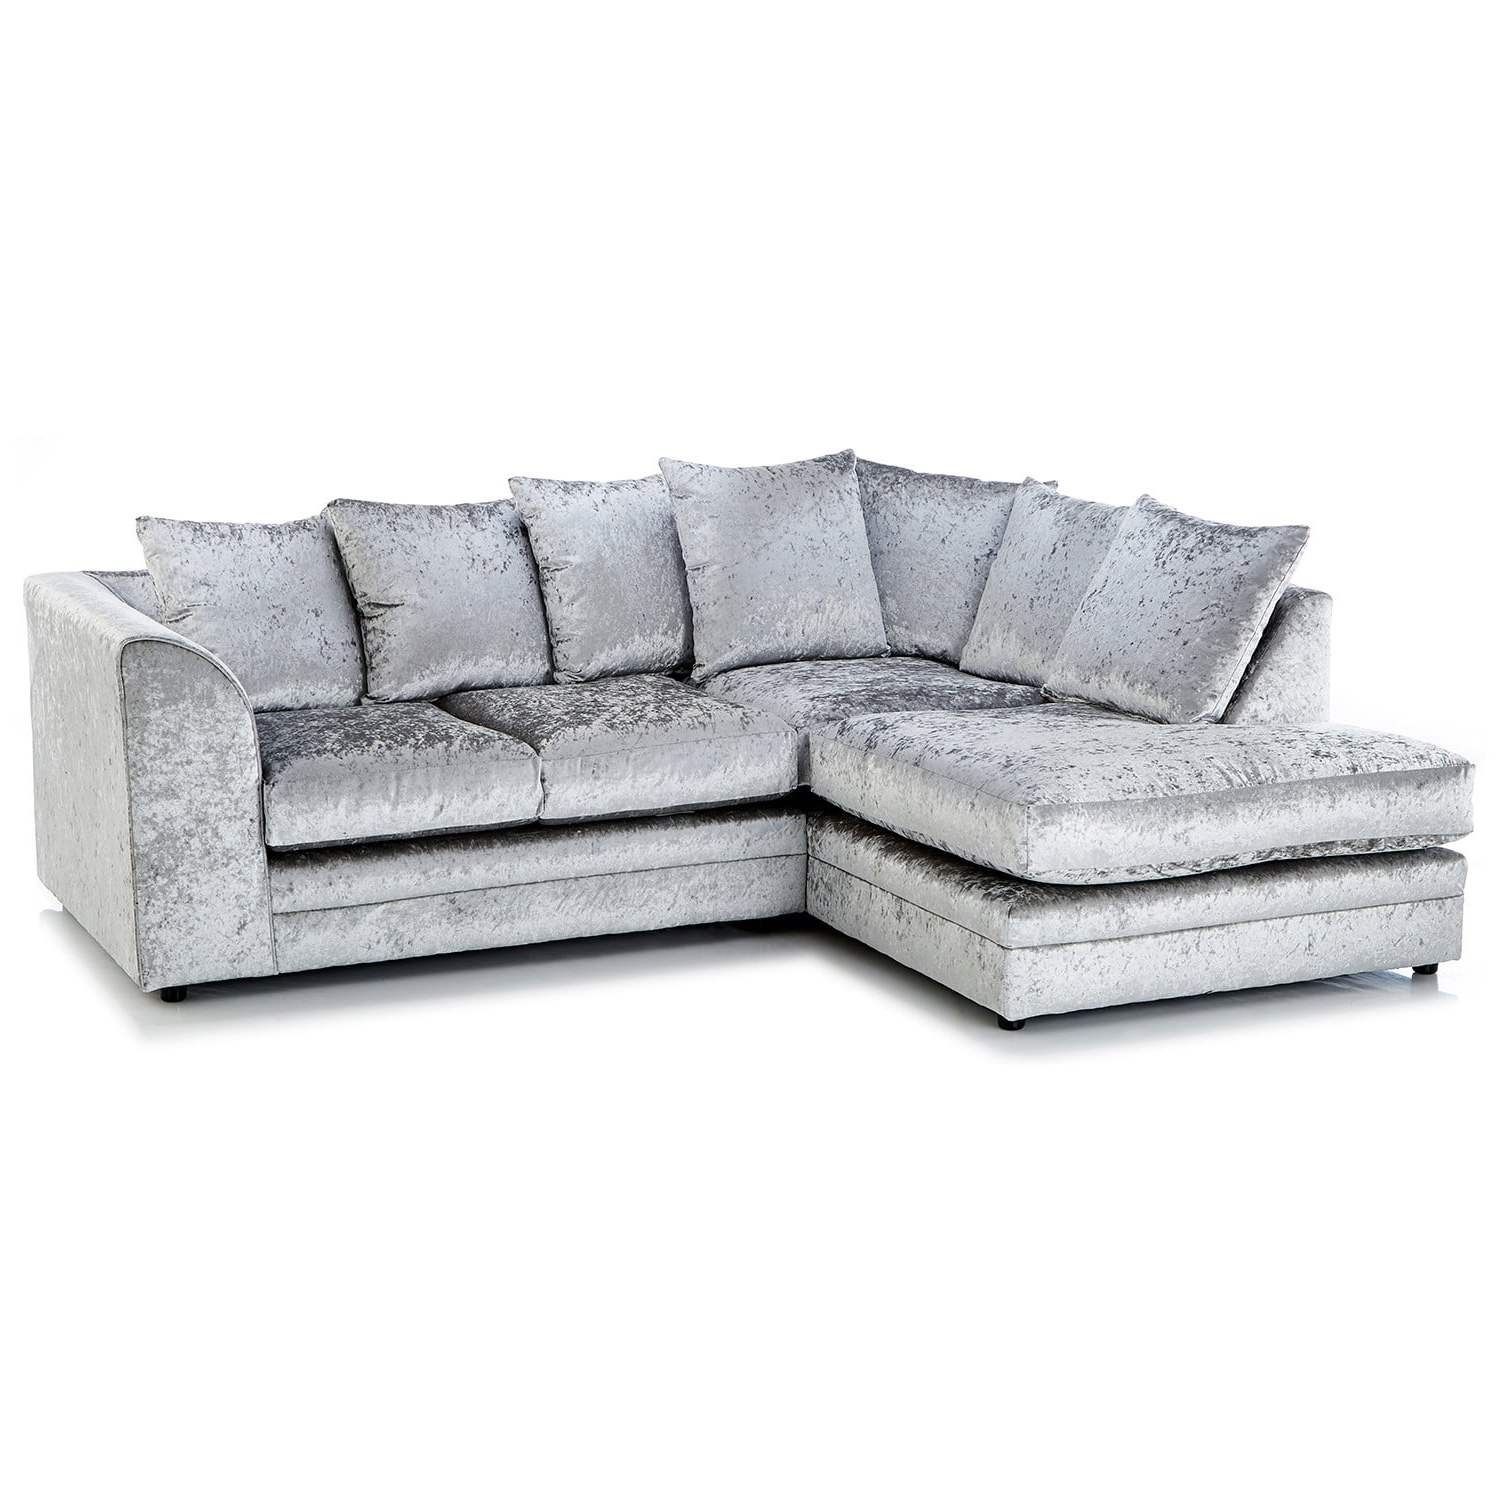 Sofas, Beds, Chairs, Cushions With Newest Corner Sofa Chairs (View 17 of 20)